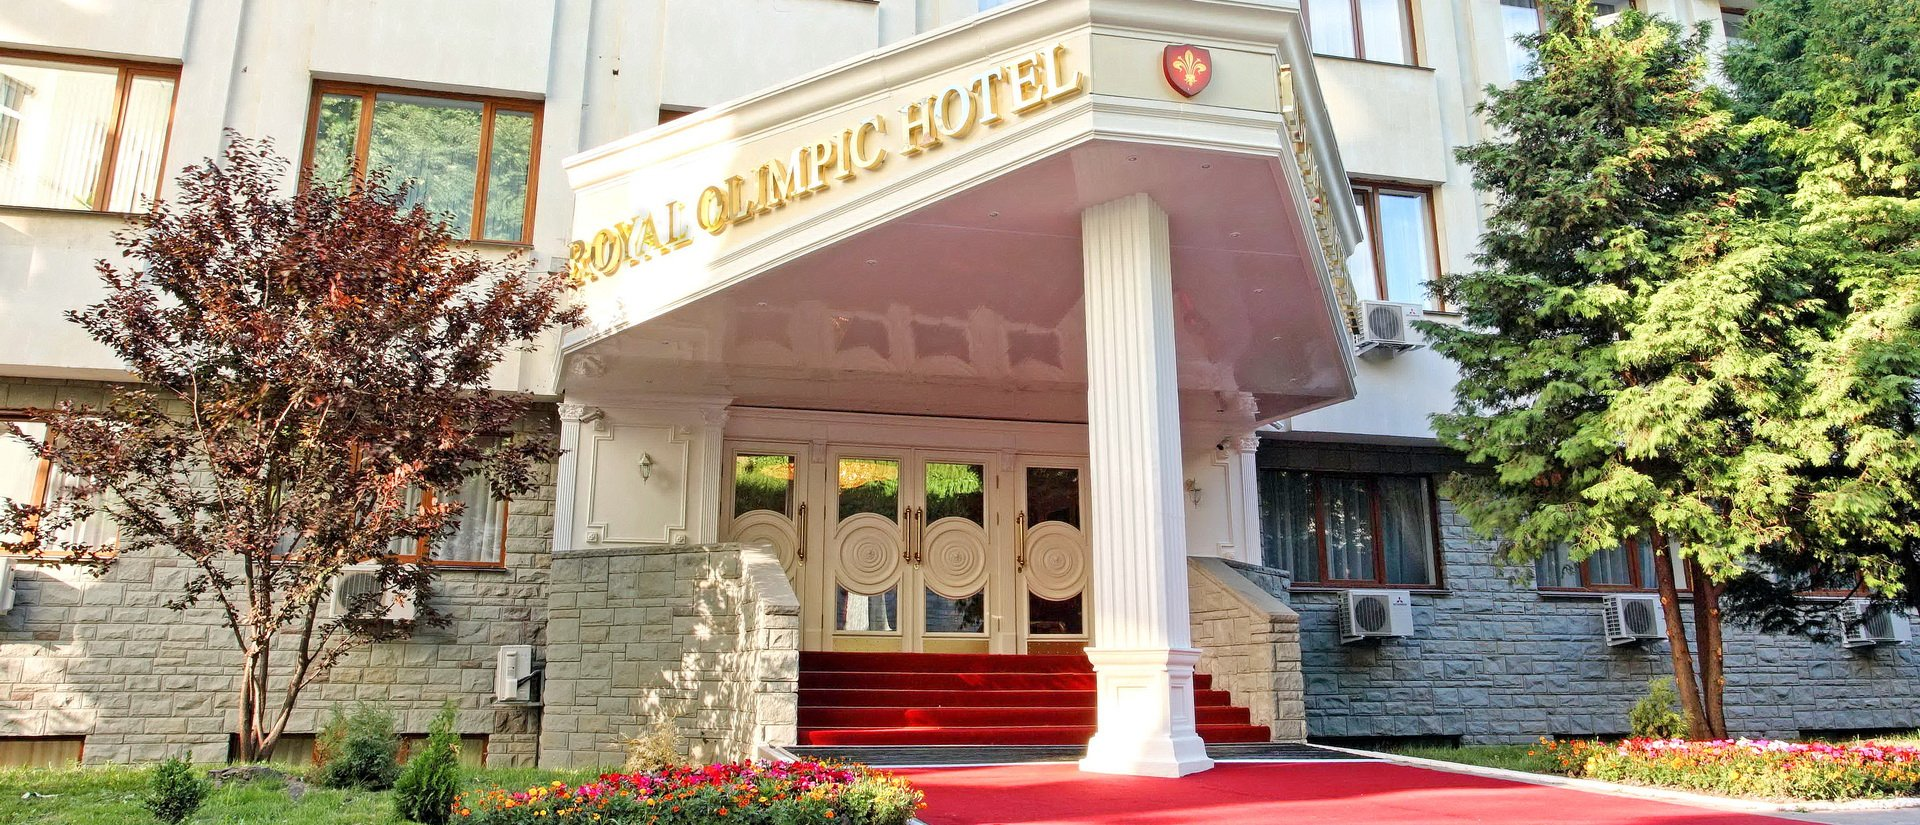 About hotel